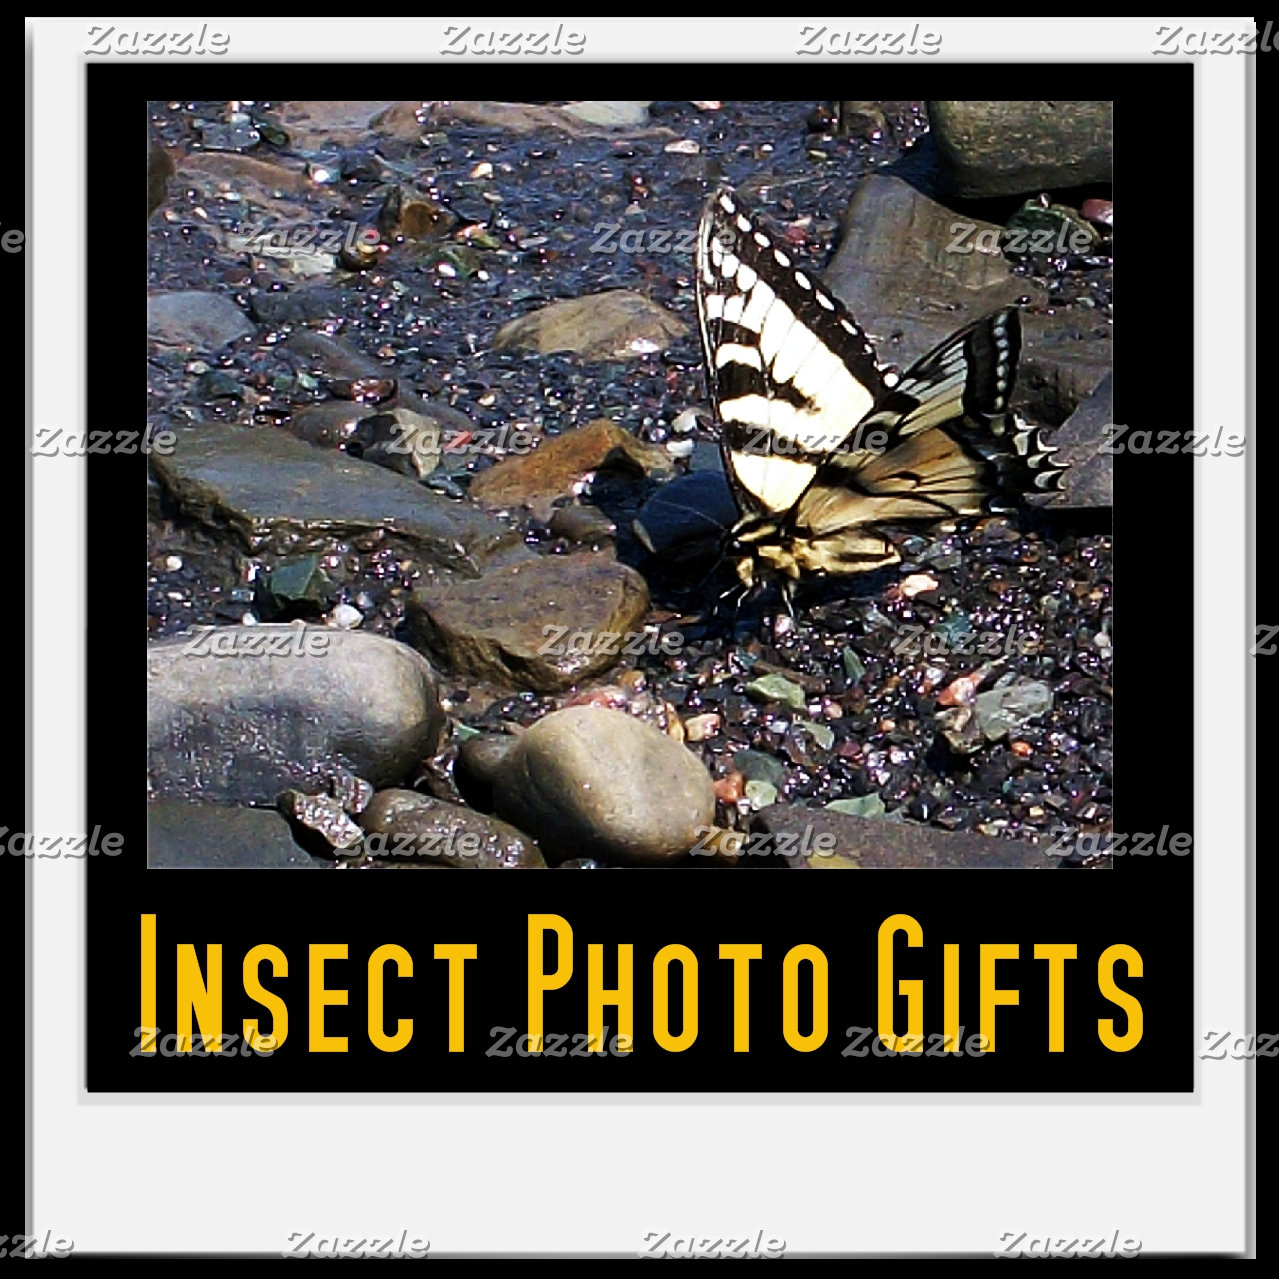 Insect Photo Gifts